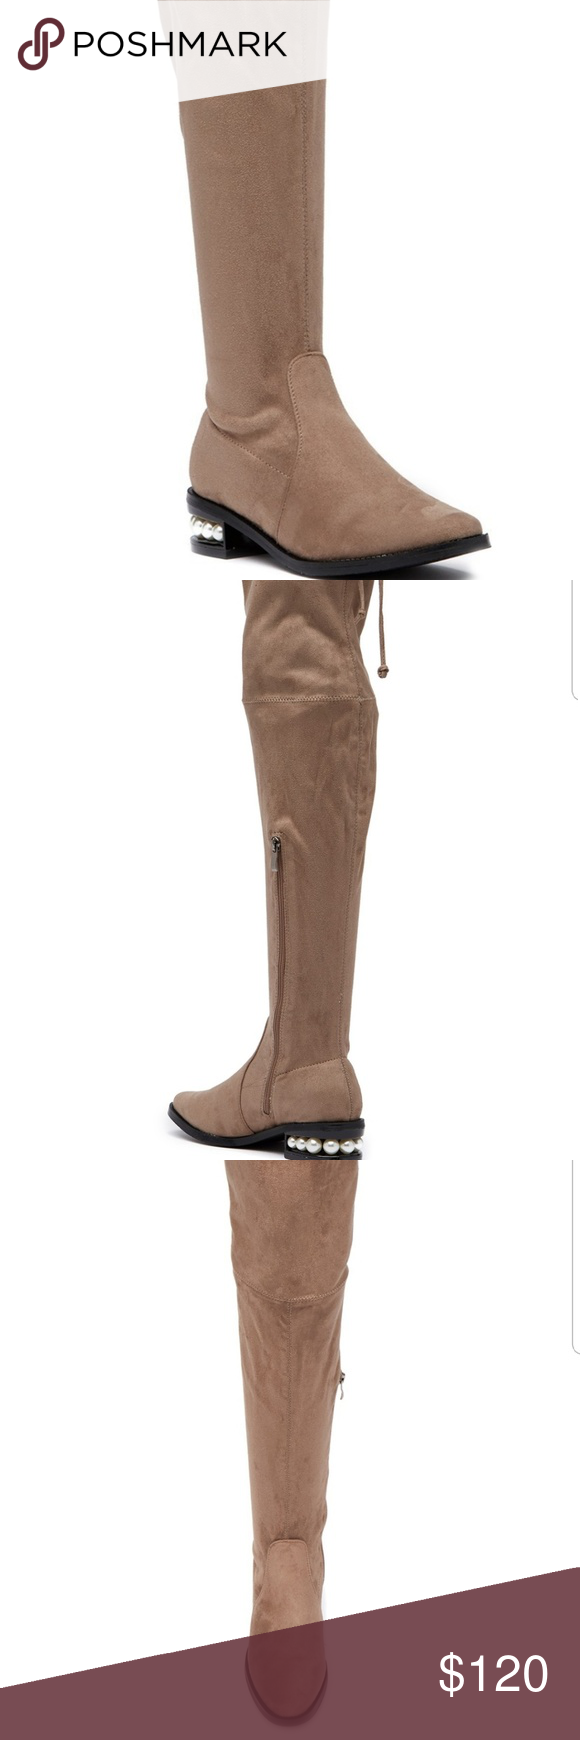 a8a683239c9 Catherine malandrino perse taupe over knee boots NEW IN BOX Catherine  Catherine malandrino perse embellished over the knee boots taupe color size  6 ...